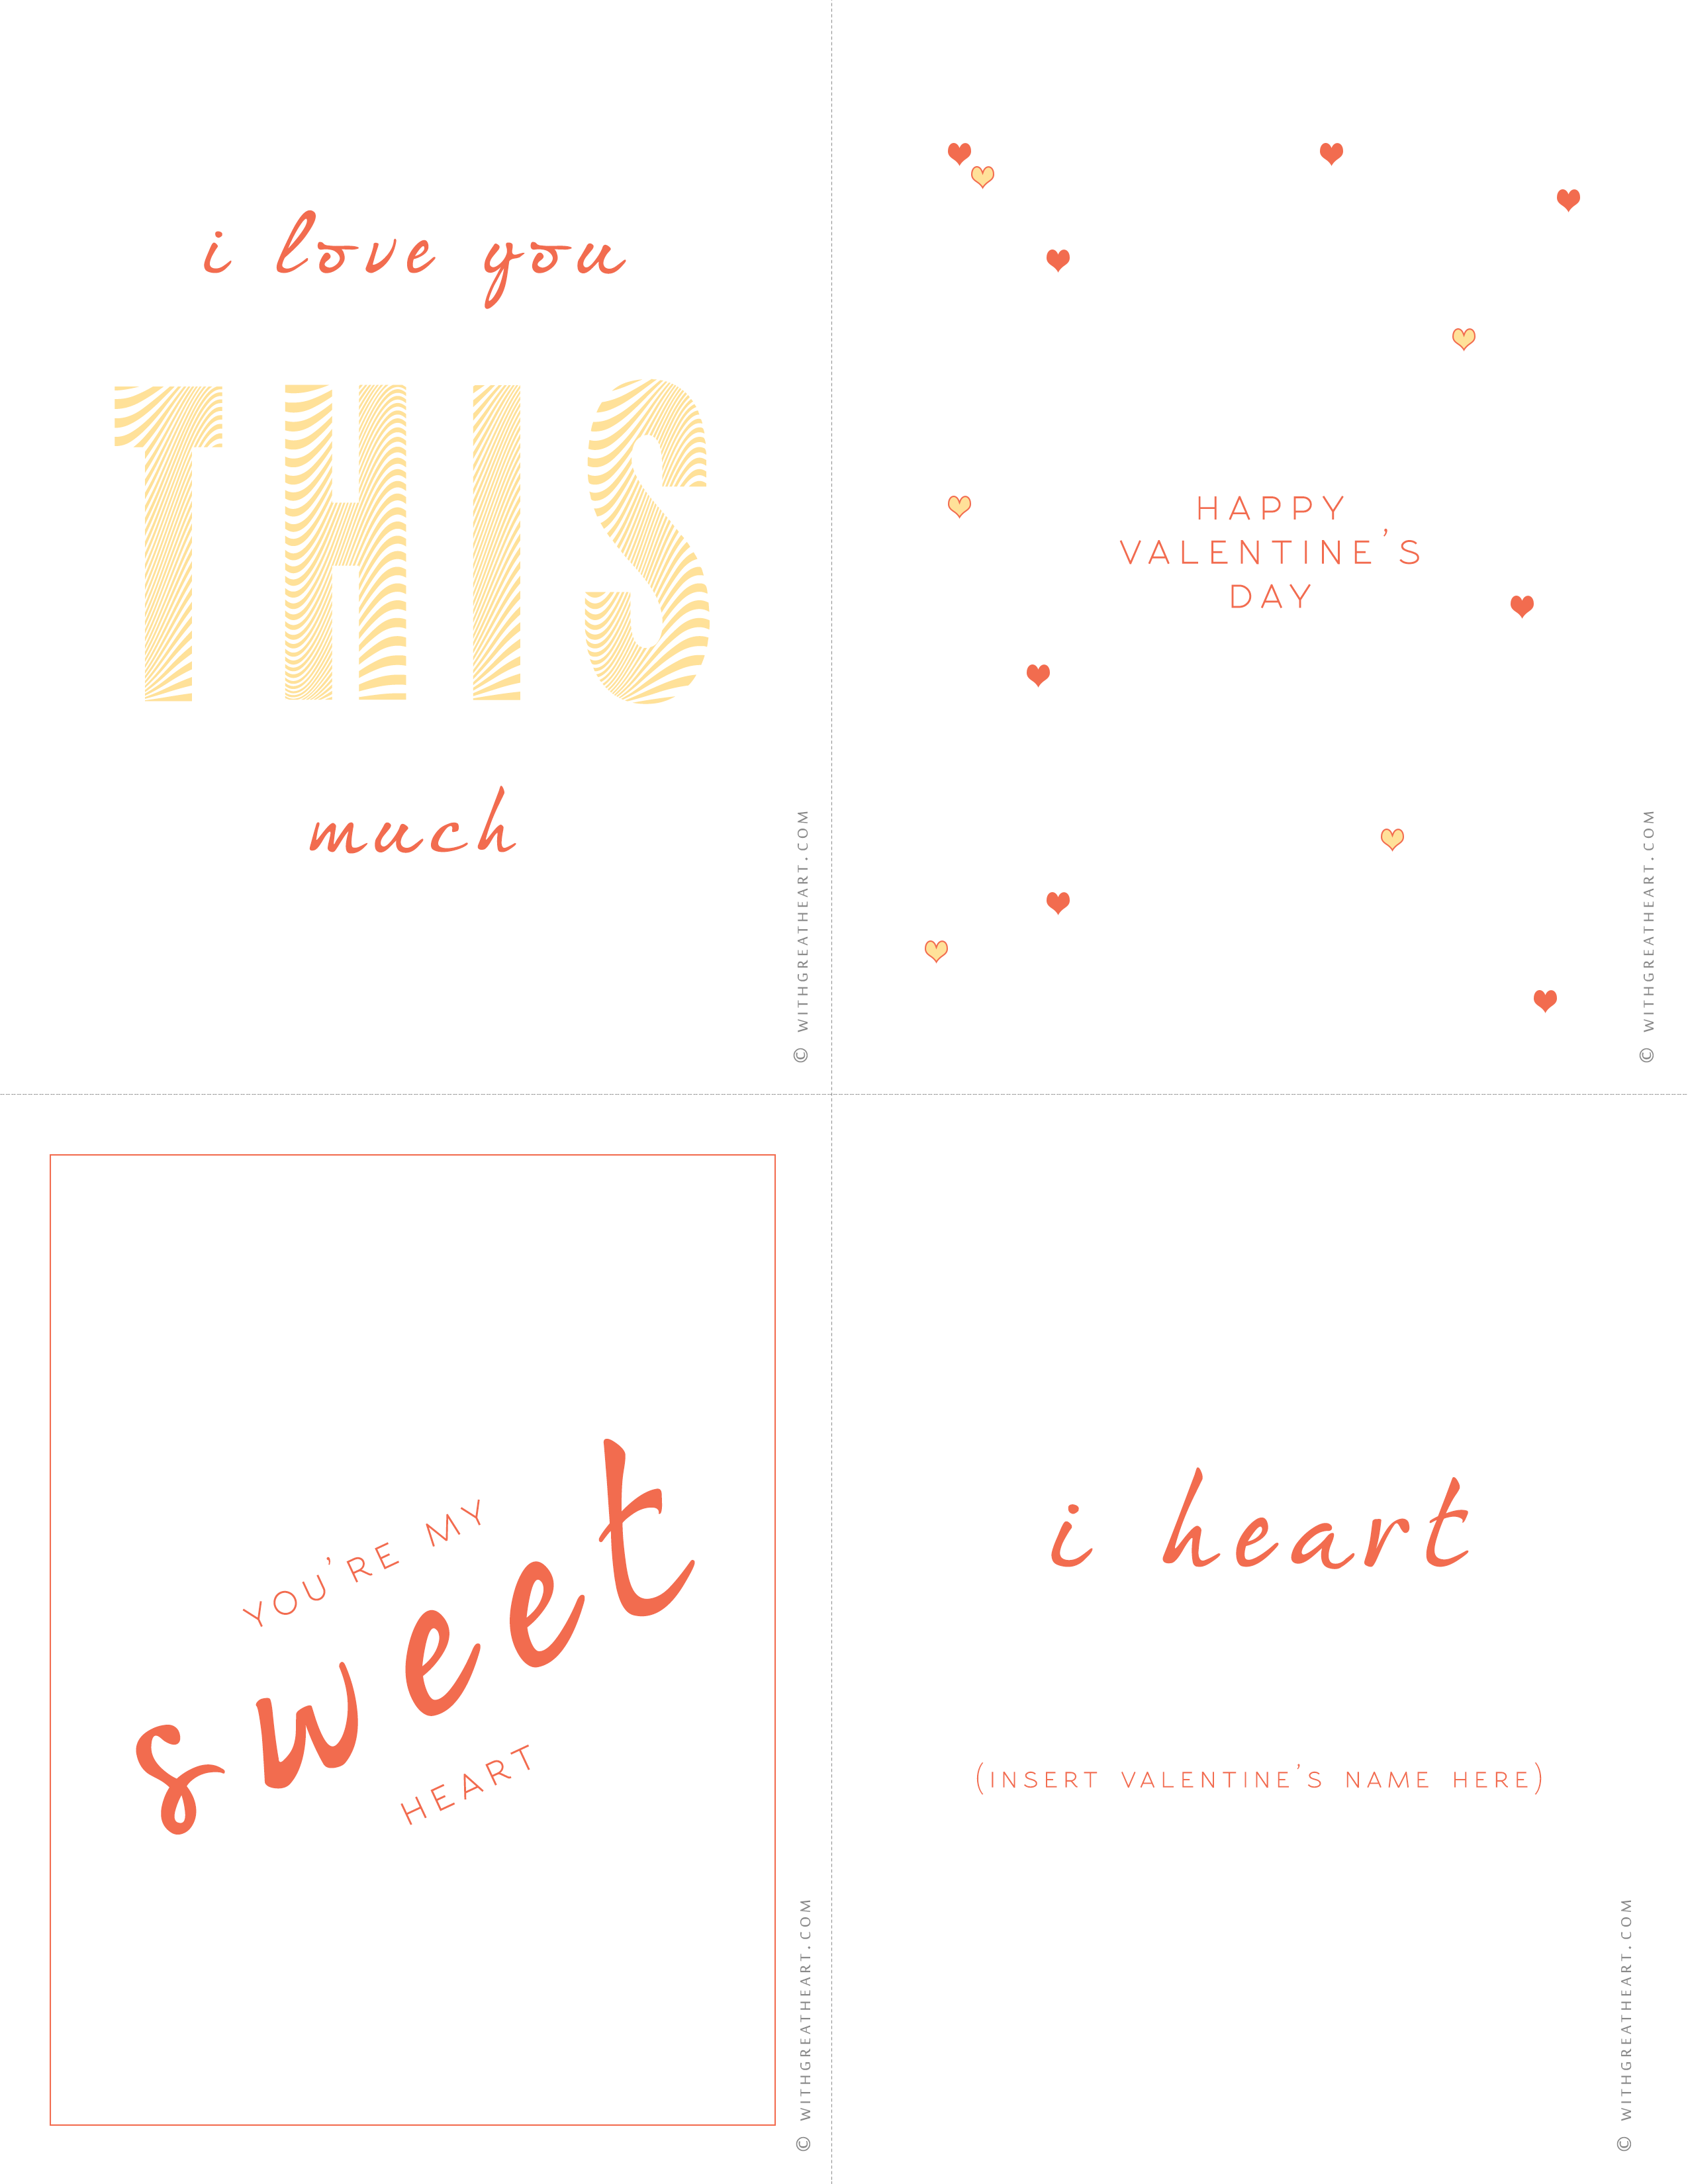 With Great Heart Valentine's Day Printables 2013